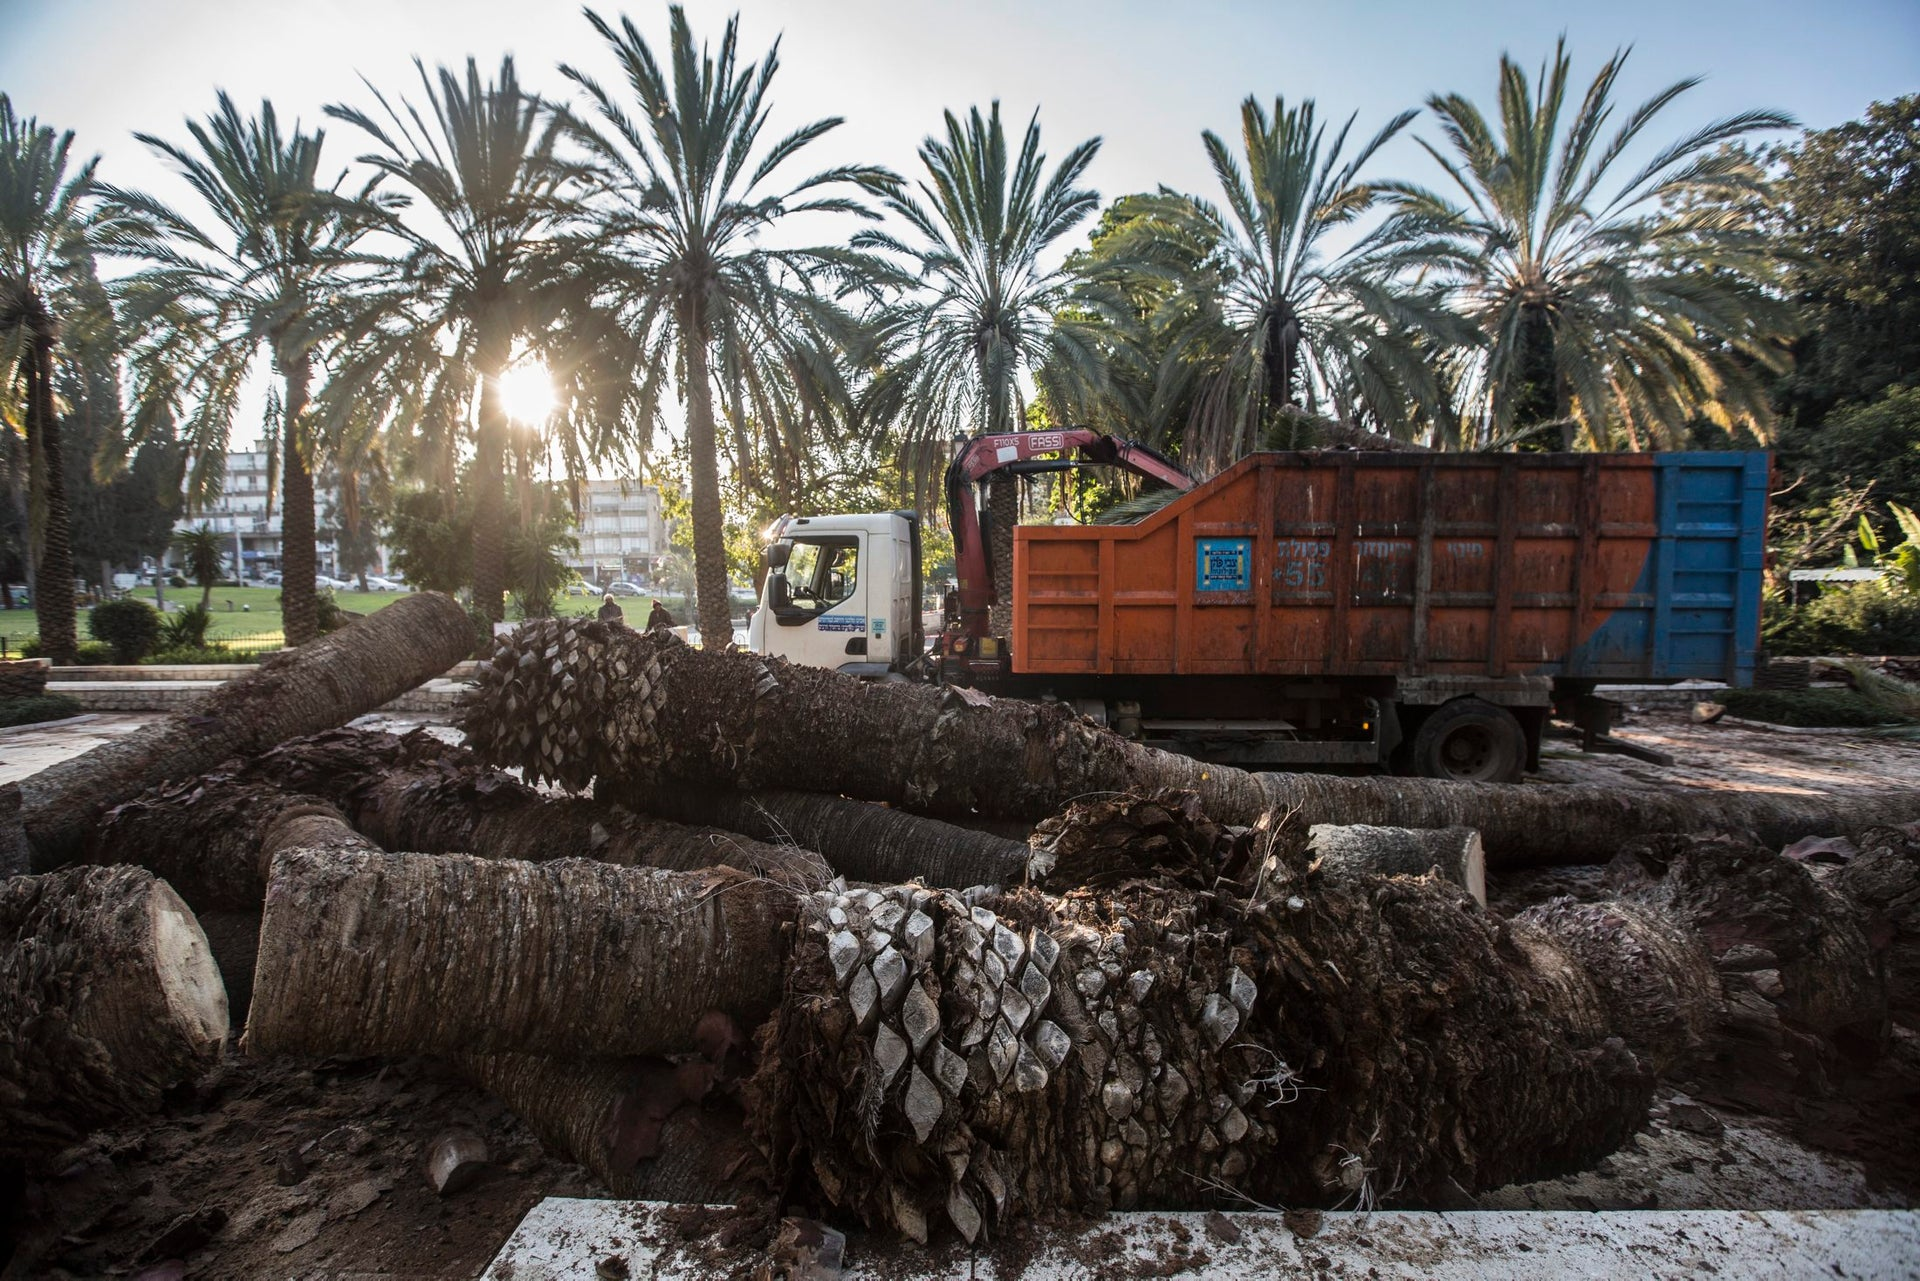 Removal of palm trees destroyed by the red palm weevil, a type of beetle, in Rishon Lezion.